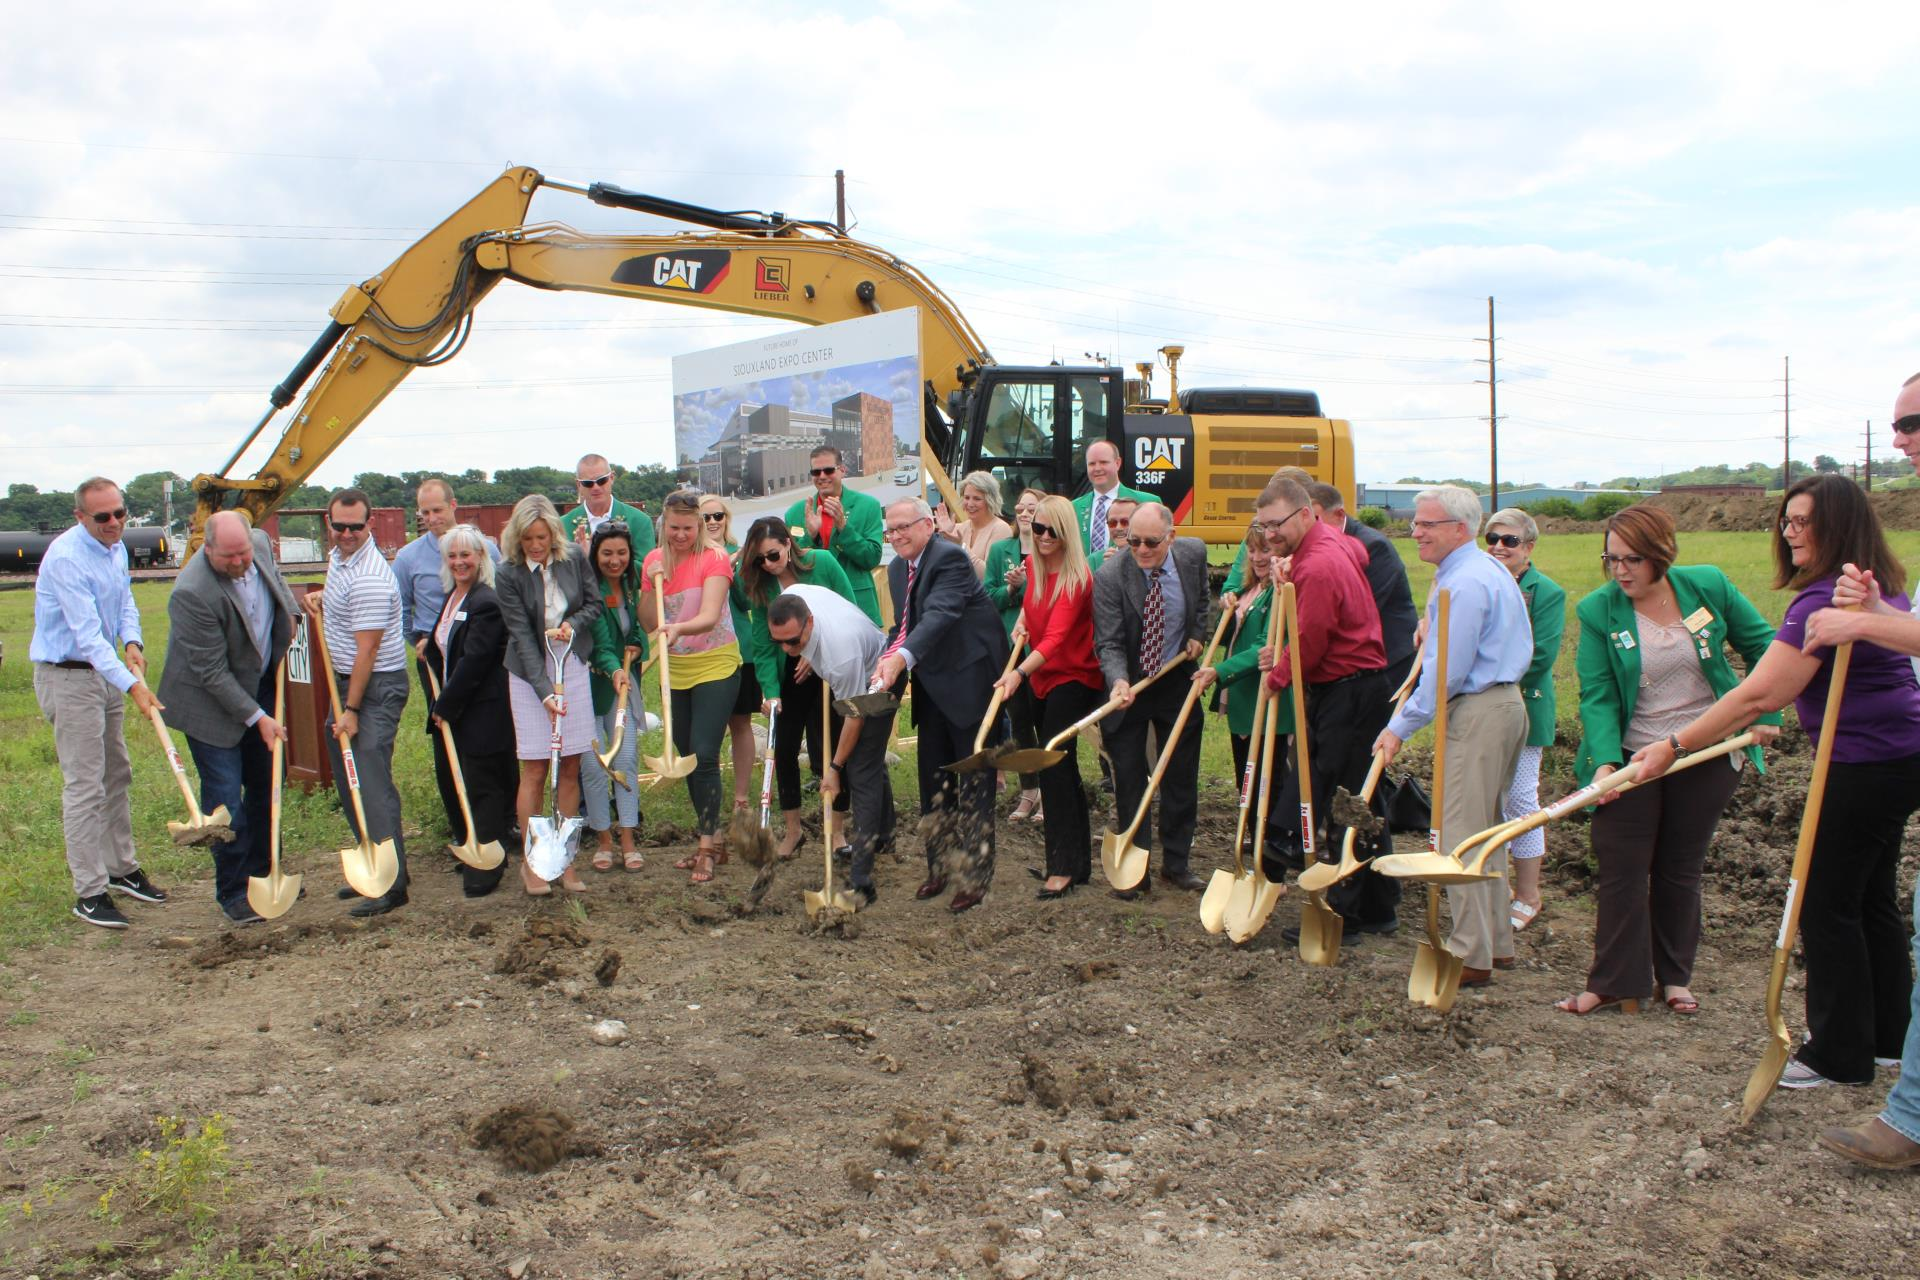 Siouxland Expo Center Groundbreaking